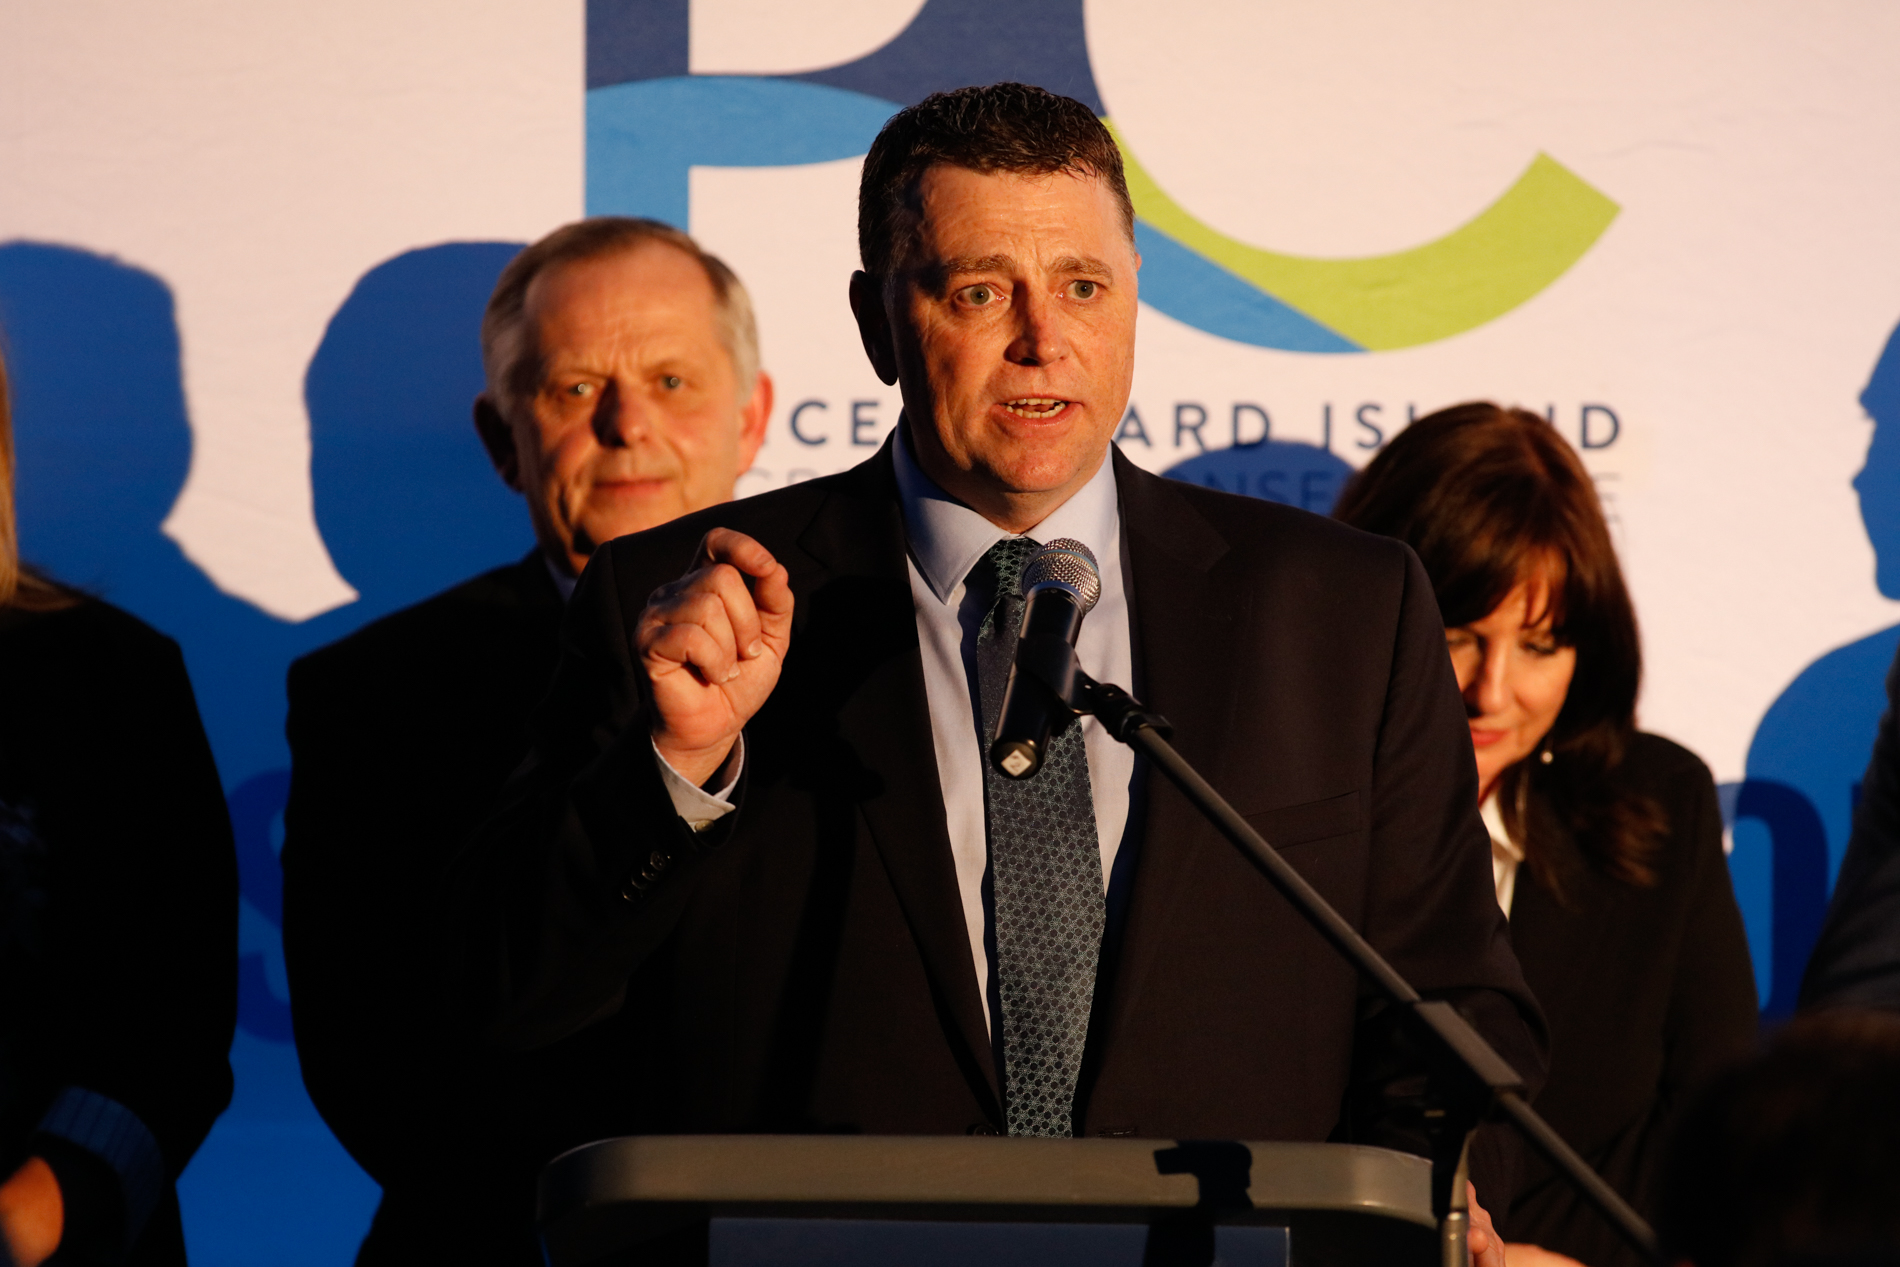 PEI Editorial Photography: PEI PC Party Kickoff in Winsloe, Prince Edward Island